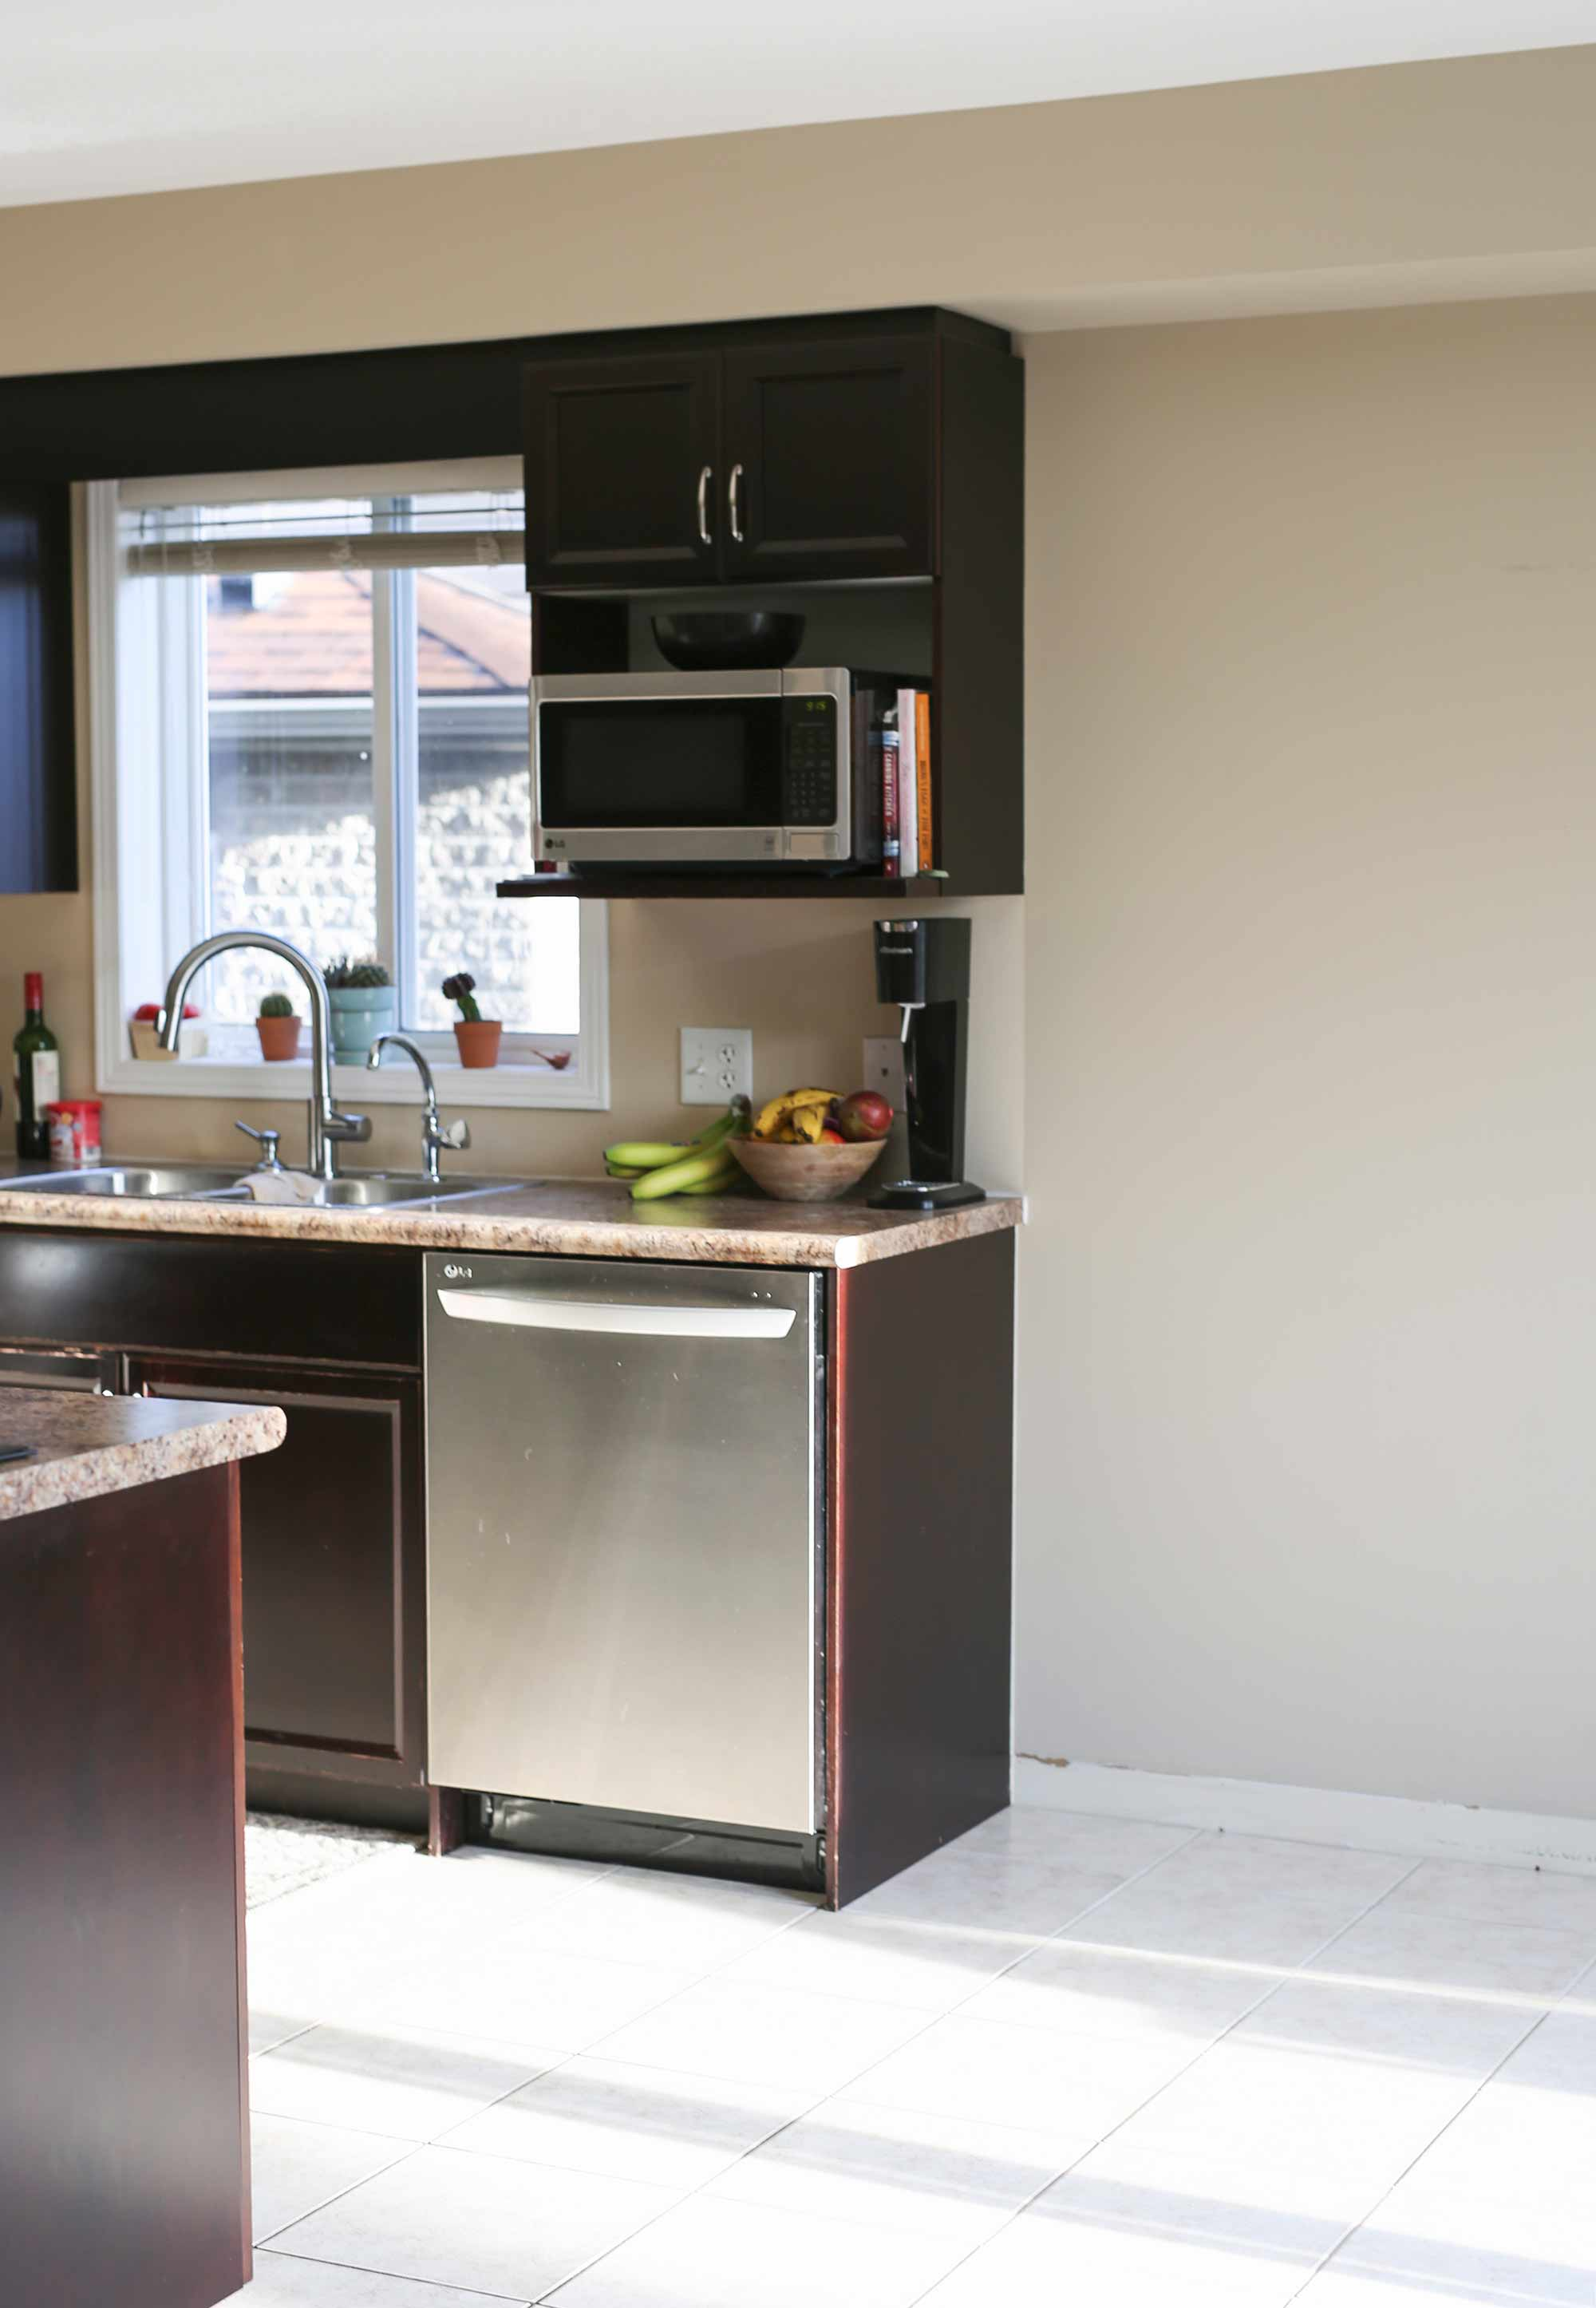 Creating A Dream Kitchen With Renuit's Cabinet Refacing